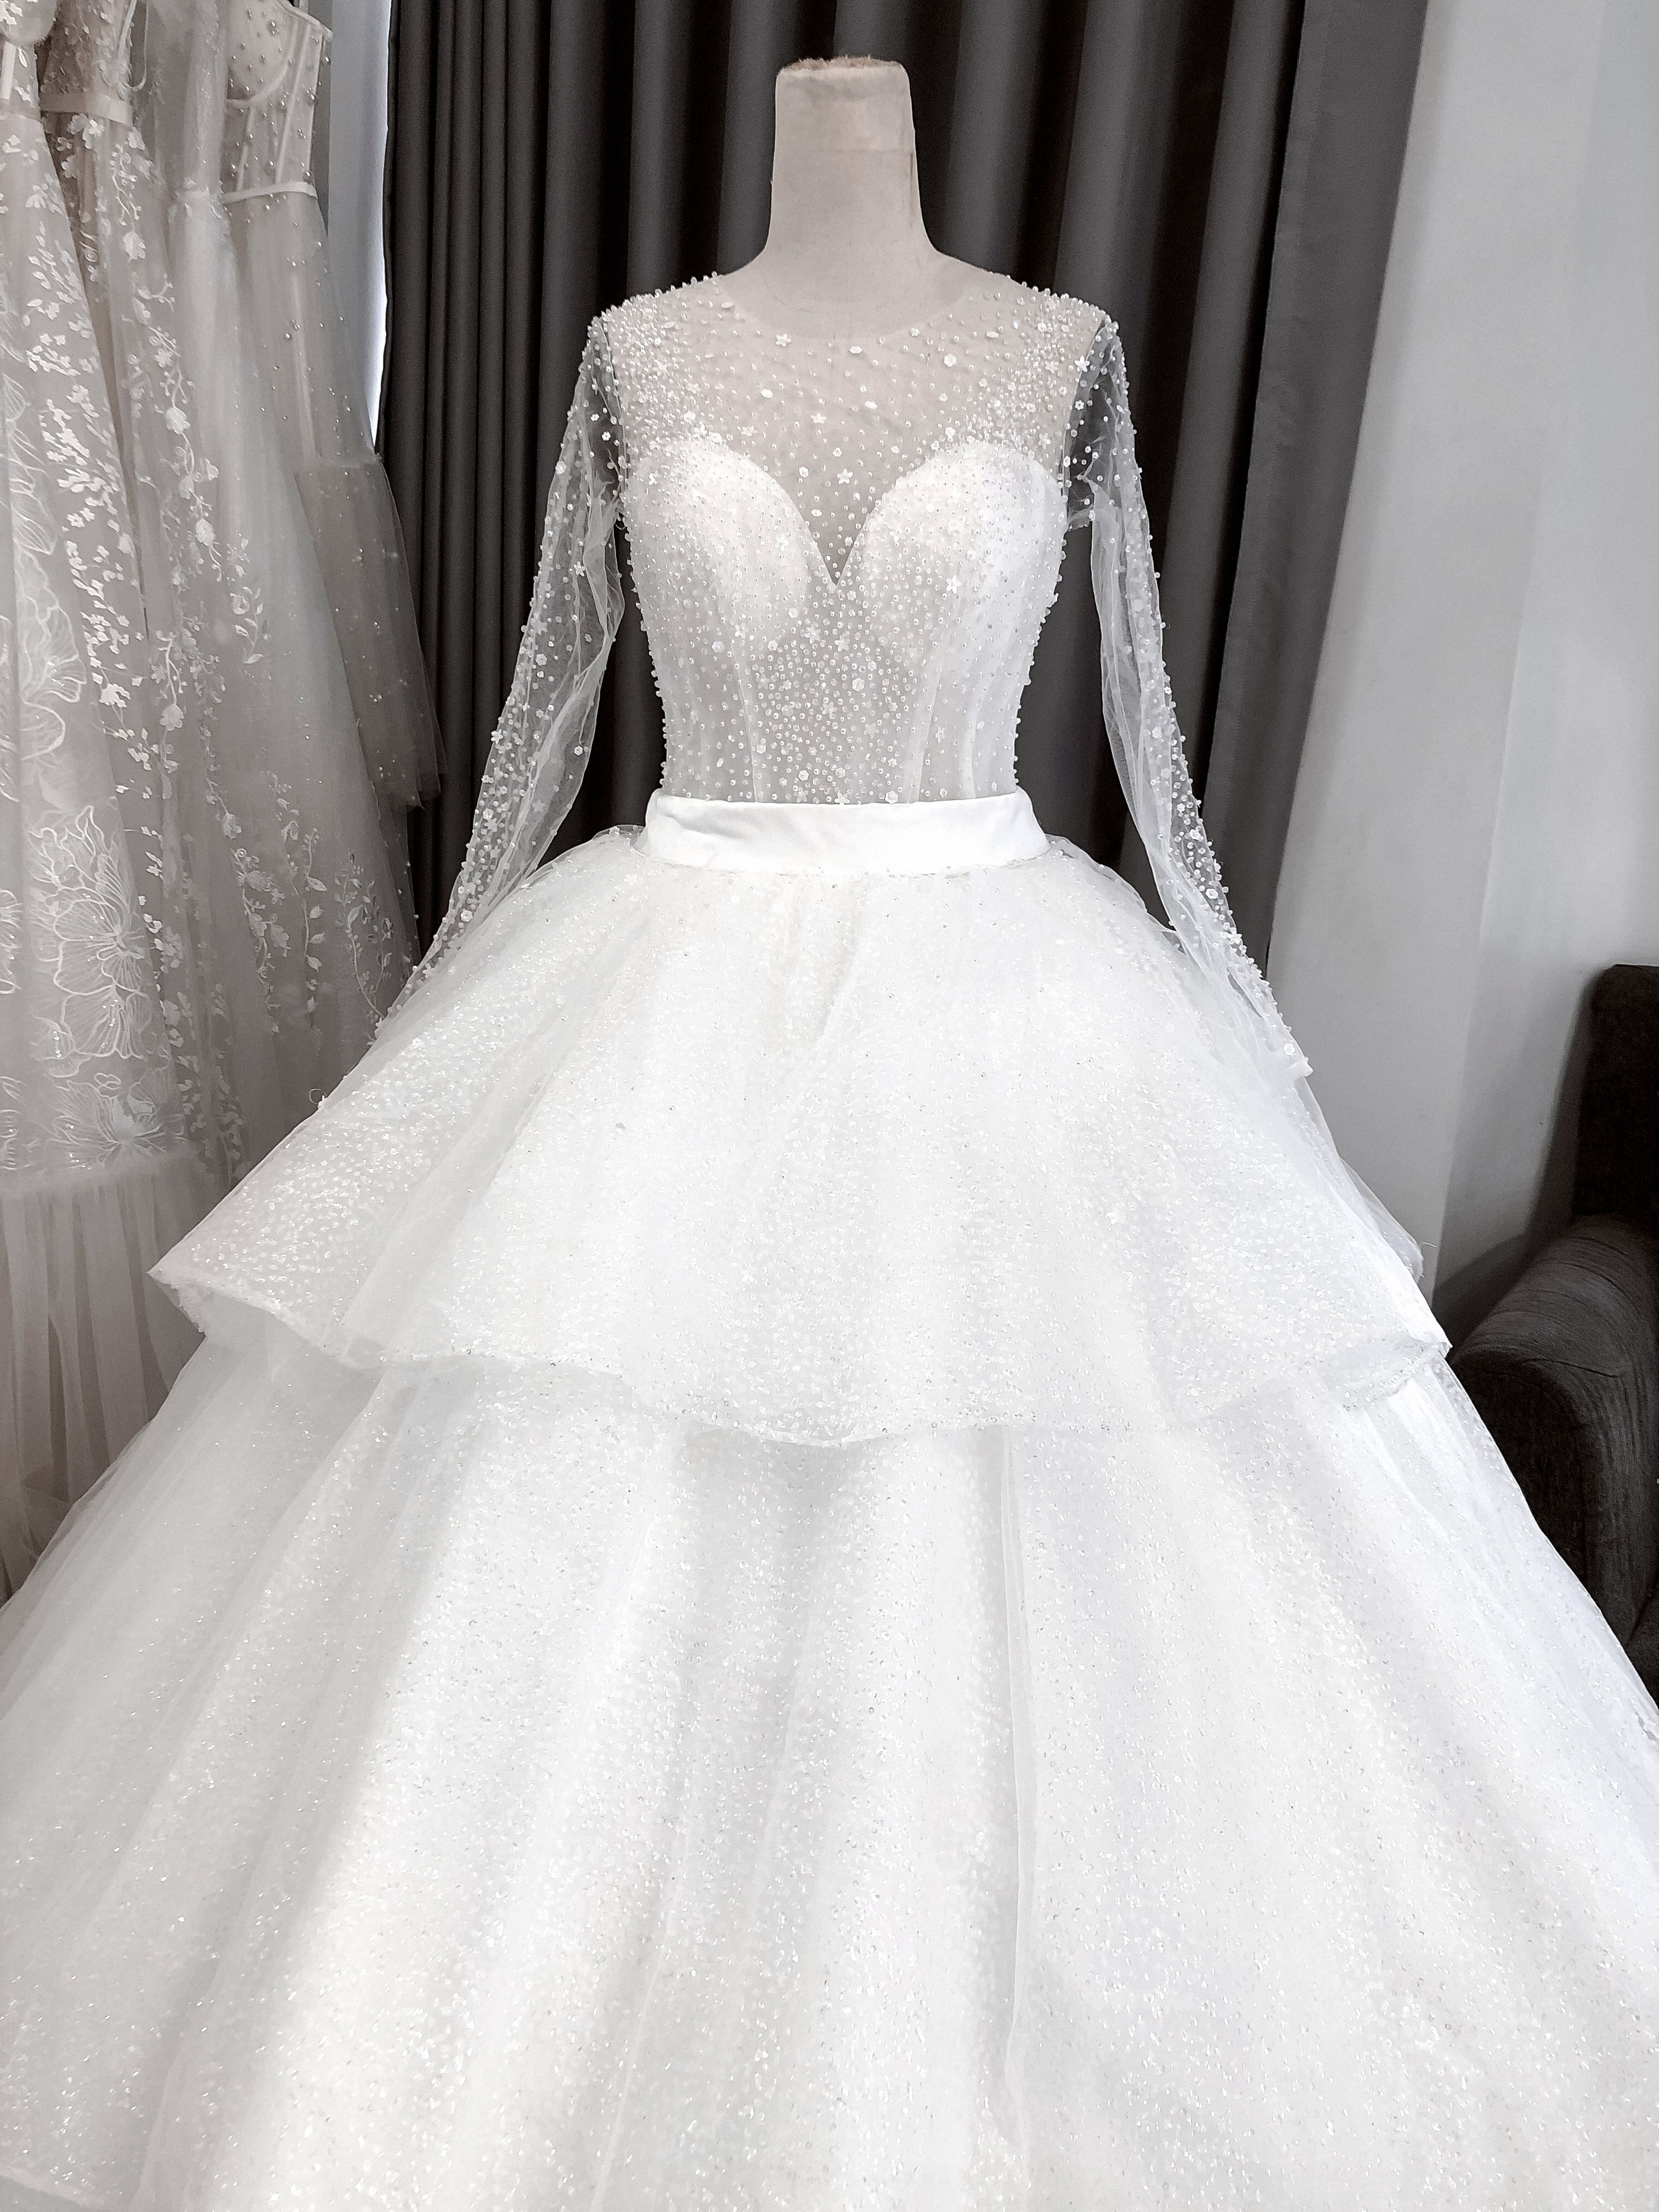 Exquisite Ball Gown Silhouette Dress With Long Sleeves Ball Dresses Ball Gowns Wedding Dresses [ 4032 x 3024 Pixel ]